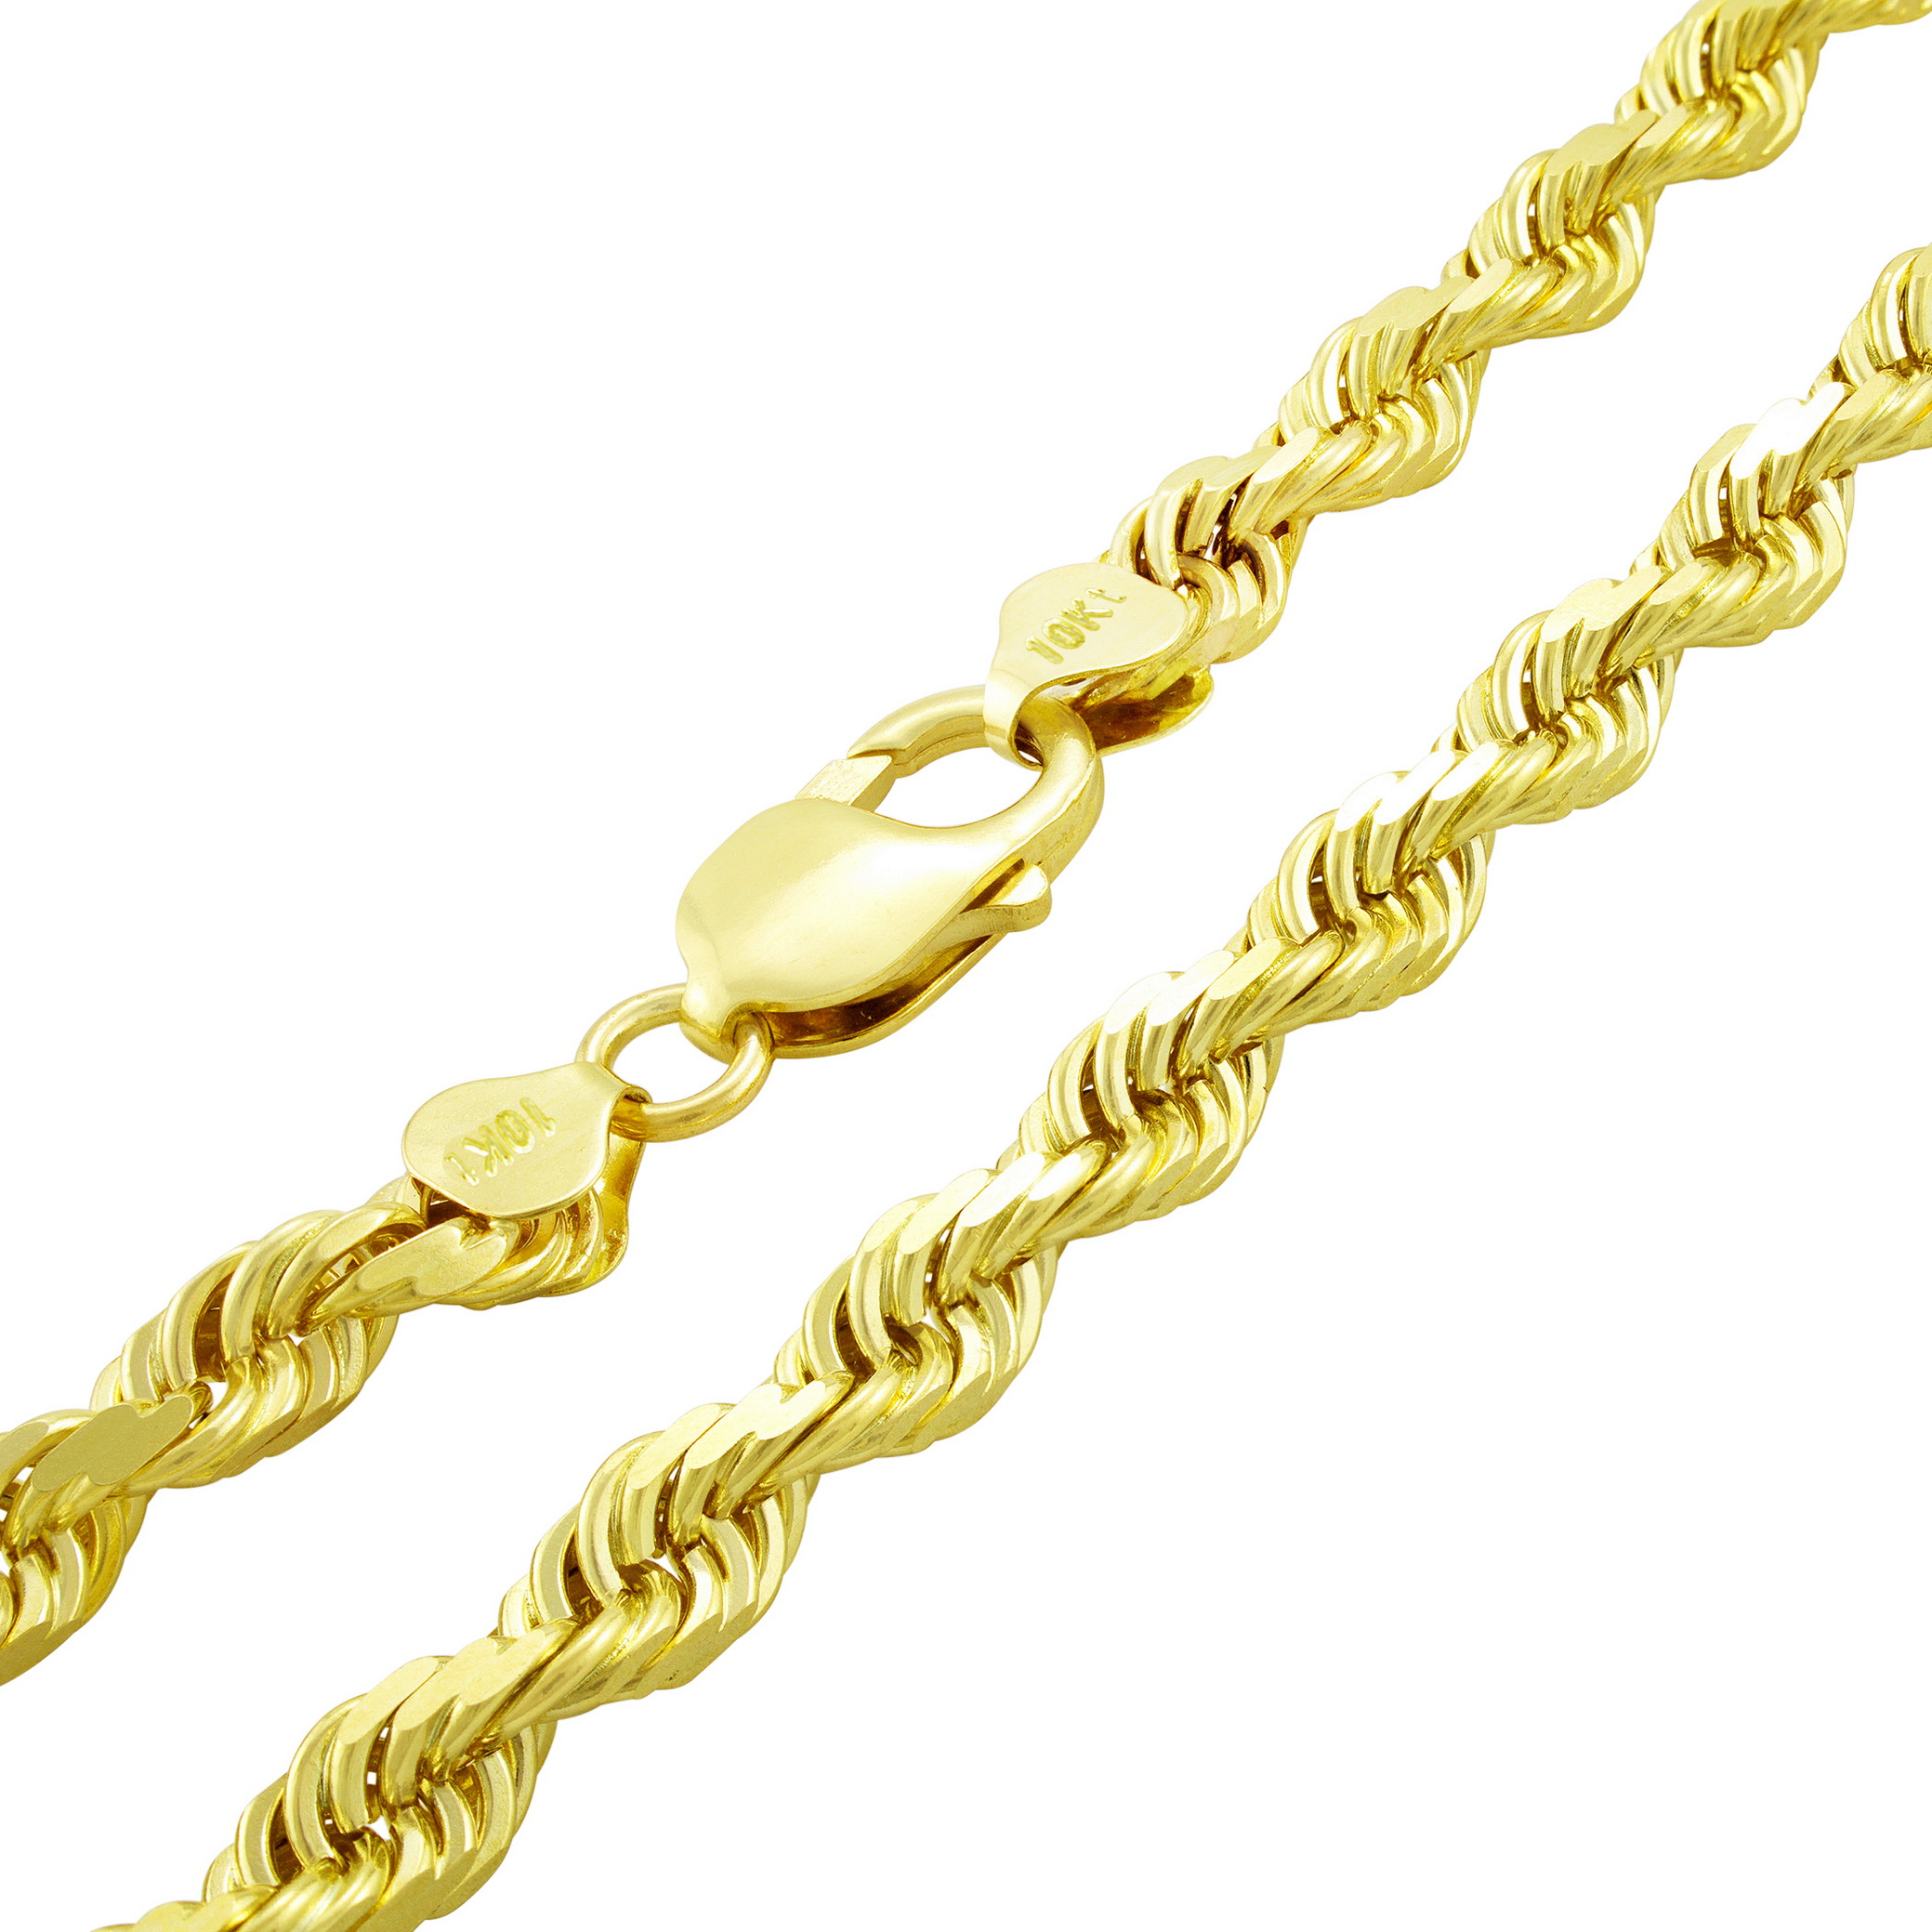 REAL 10K Yellow Gold 6mm WIDE Italian Diamond Cut Rope Chain Link Necklace 22″